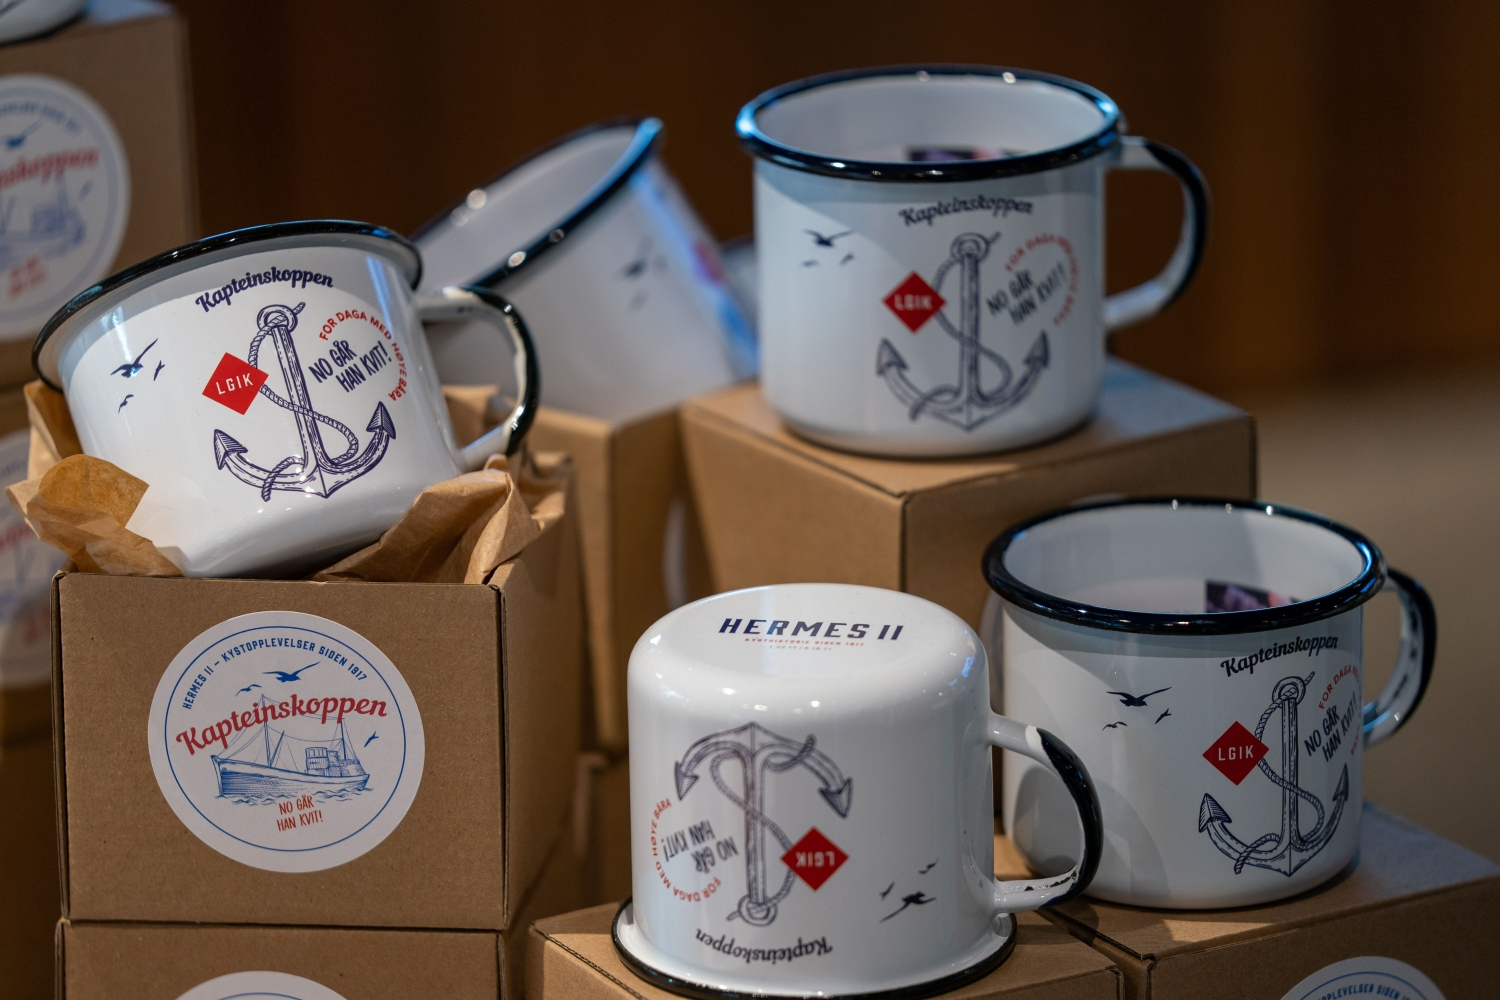 Cups with Hermes 2 logo